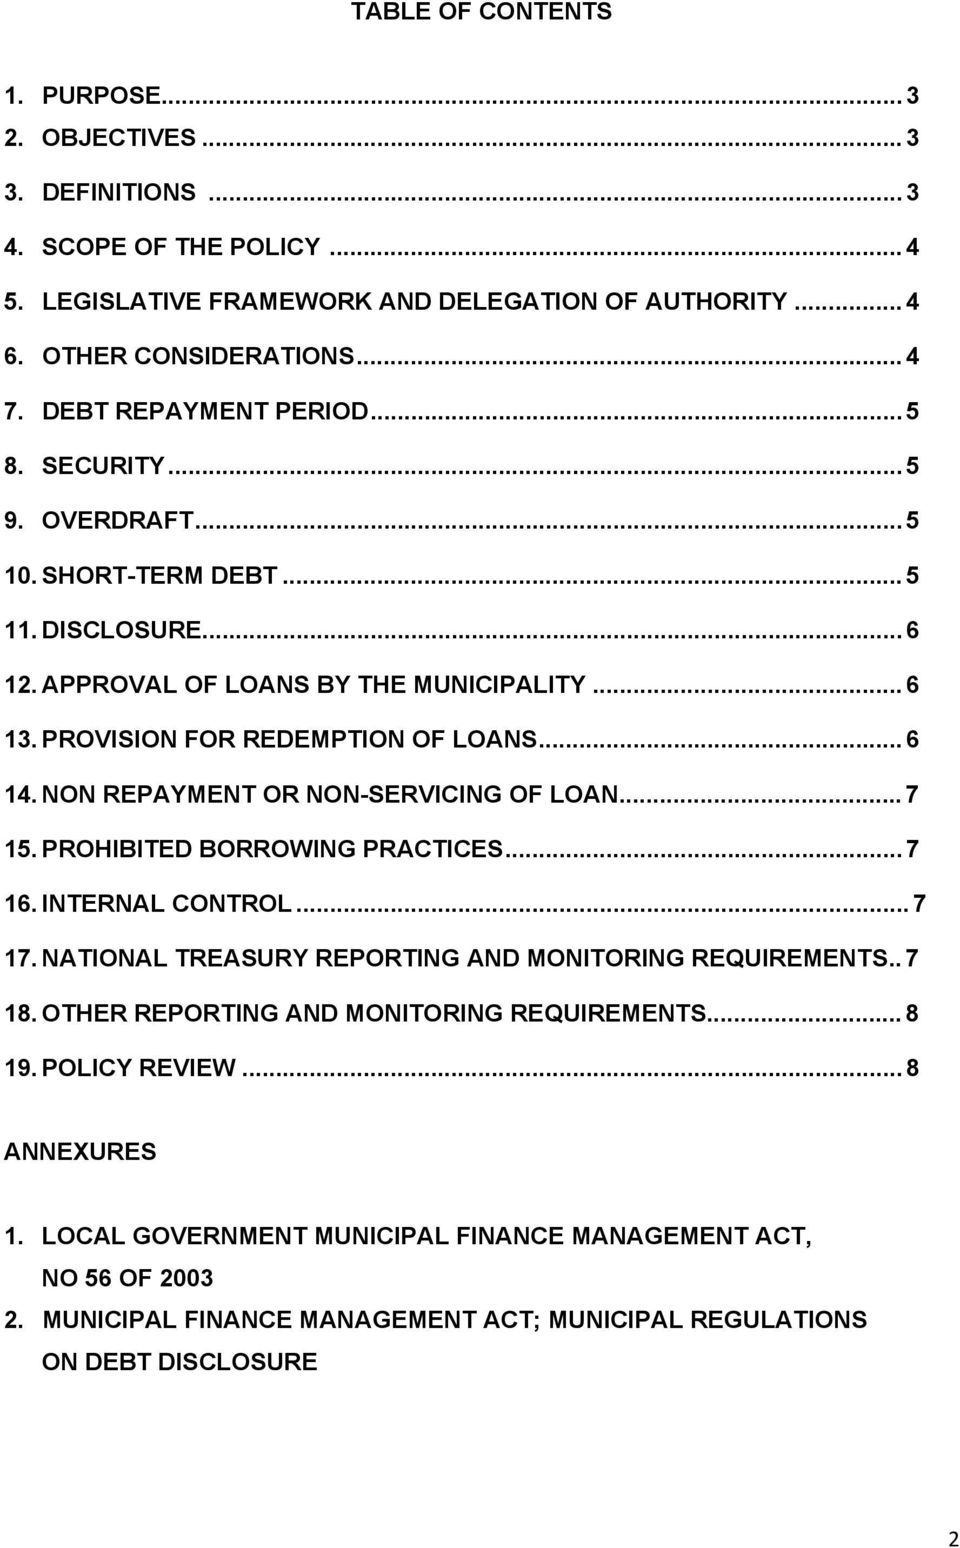 NON REPAYMENT OR NON-SERVICING OF LOAN... 7 5. PROHIBITED BORROWING PRACTICES... 7 6. INTERNAL CONTROL... 7 7. NATIONAL TREASURY REPORTING AND MONITORING REQUIREMENTS.. 7 8.